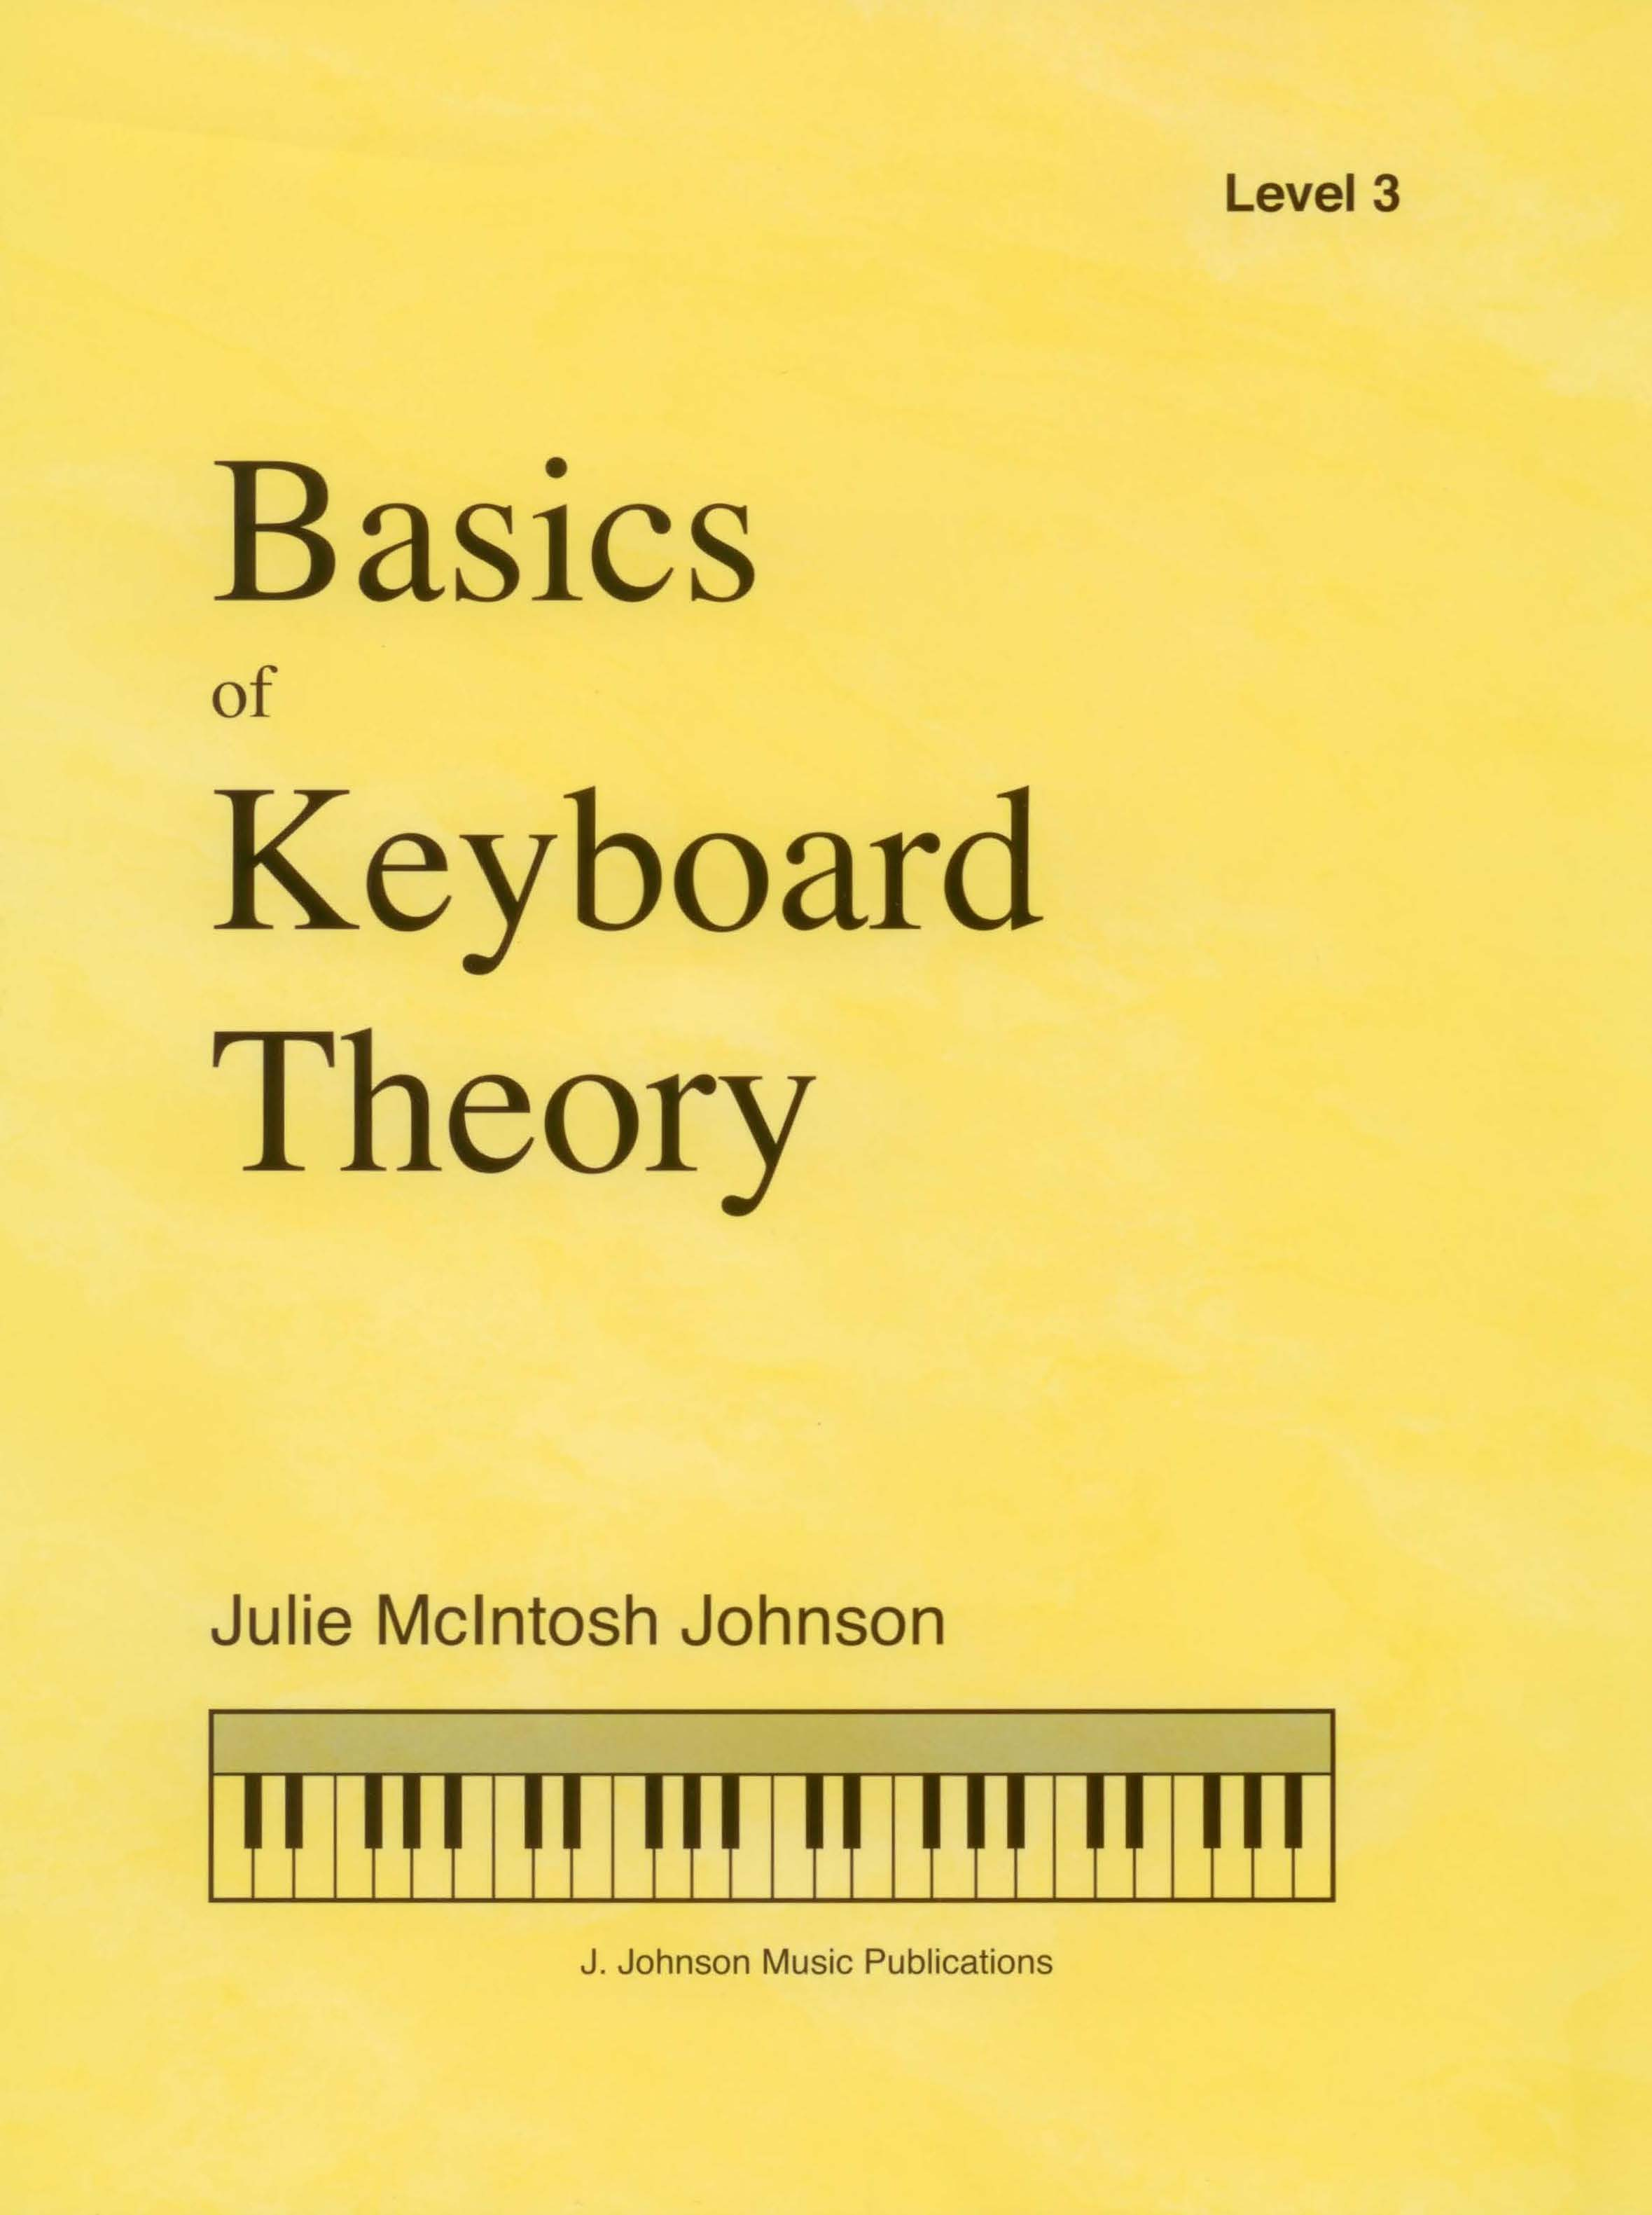 Basics of Keyboard Theory